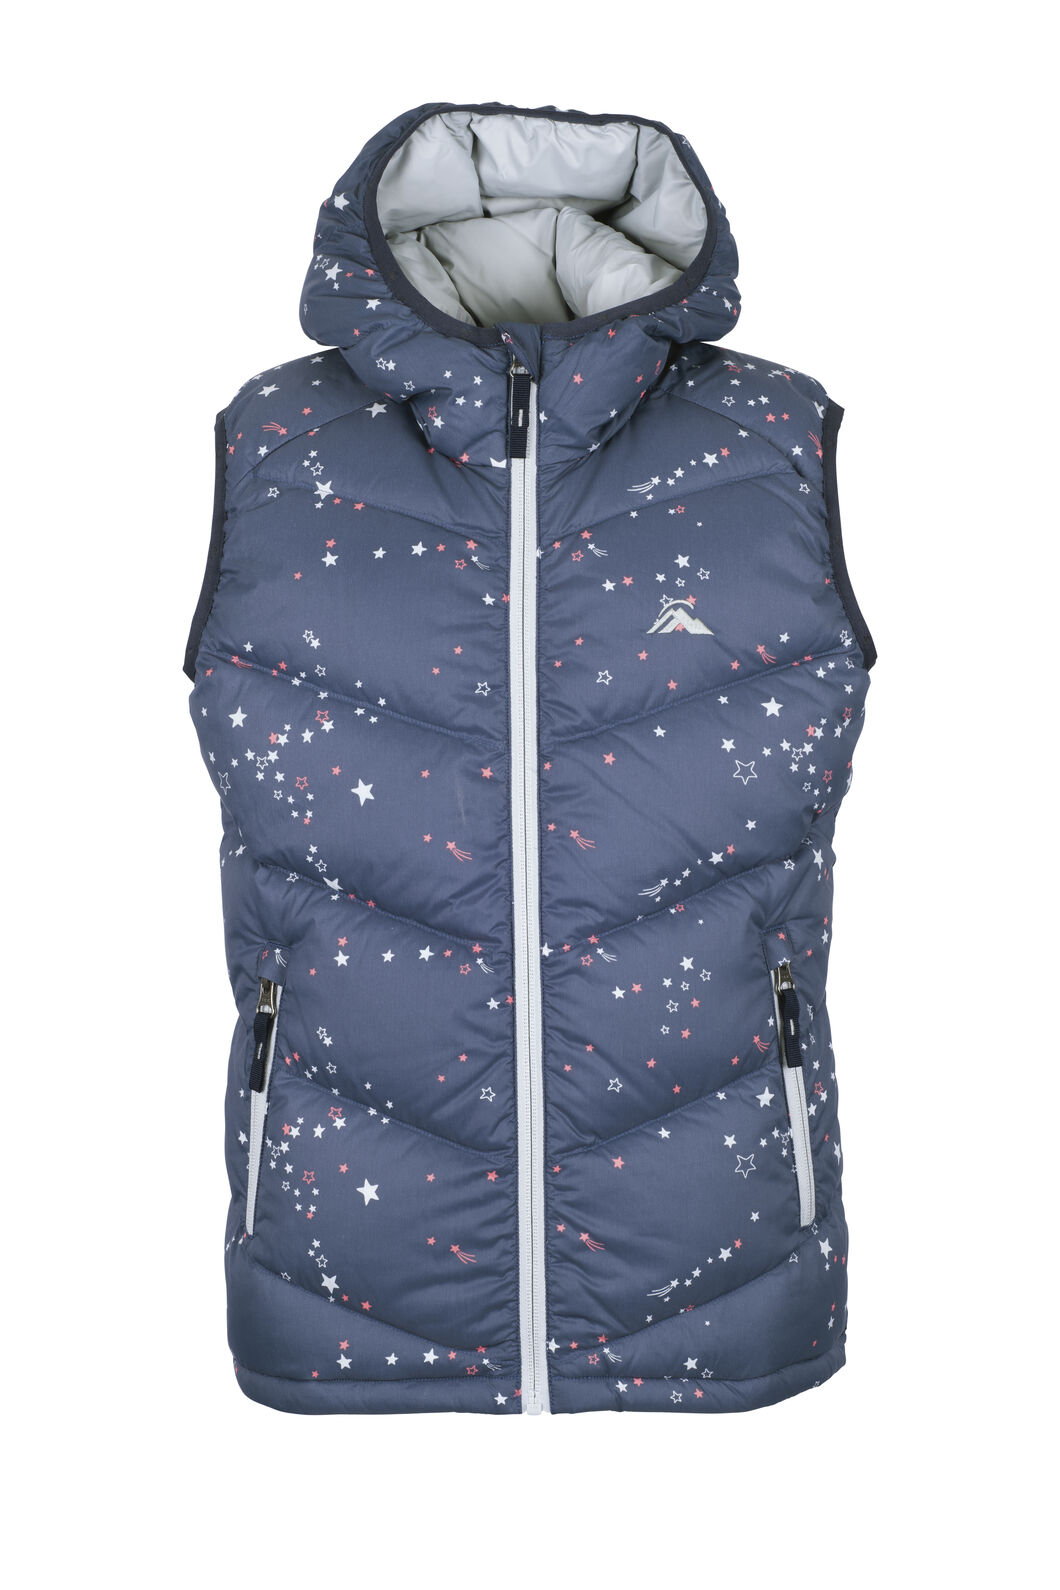 Macpac Stargazer Hooded Down Vest — Kids', Black Iris Print, hi-res